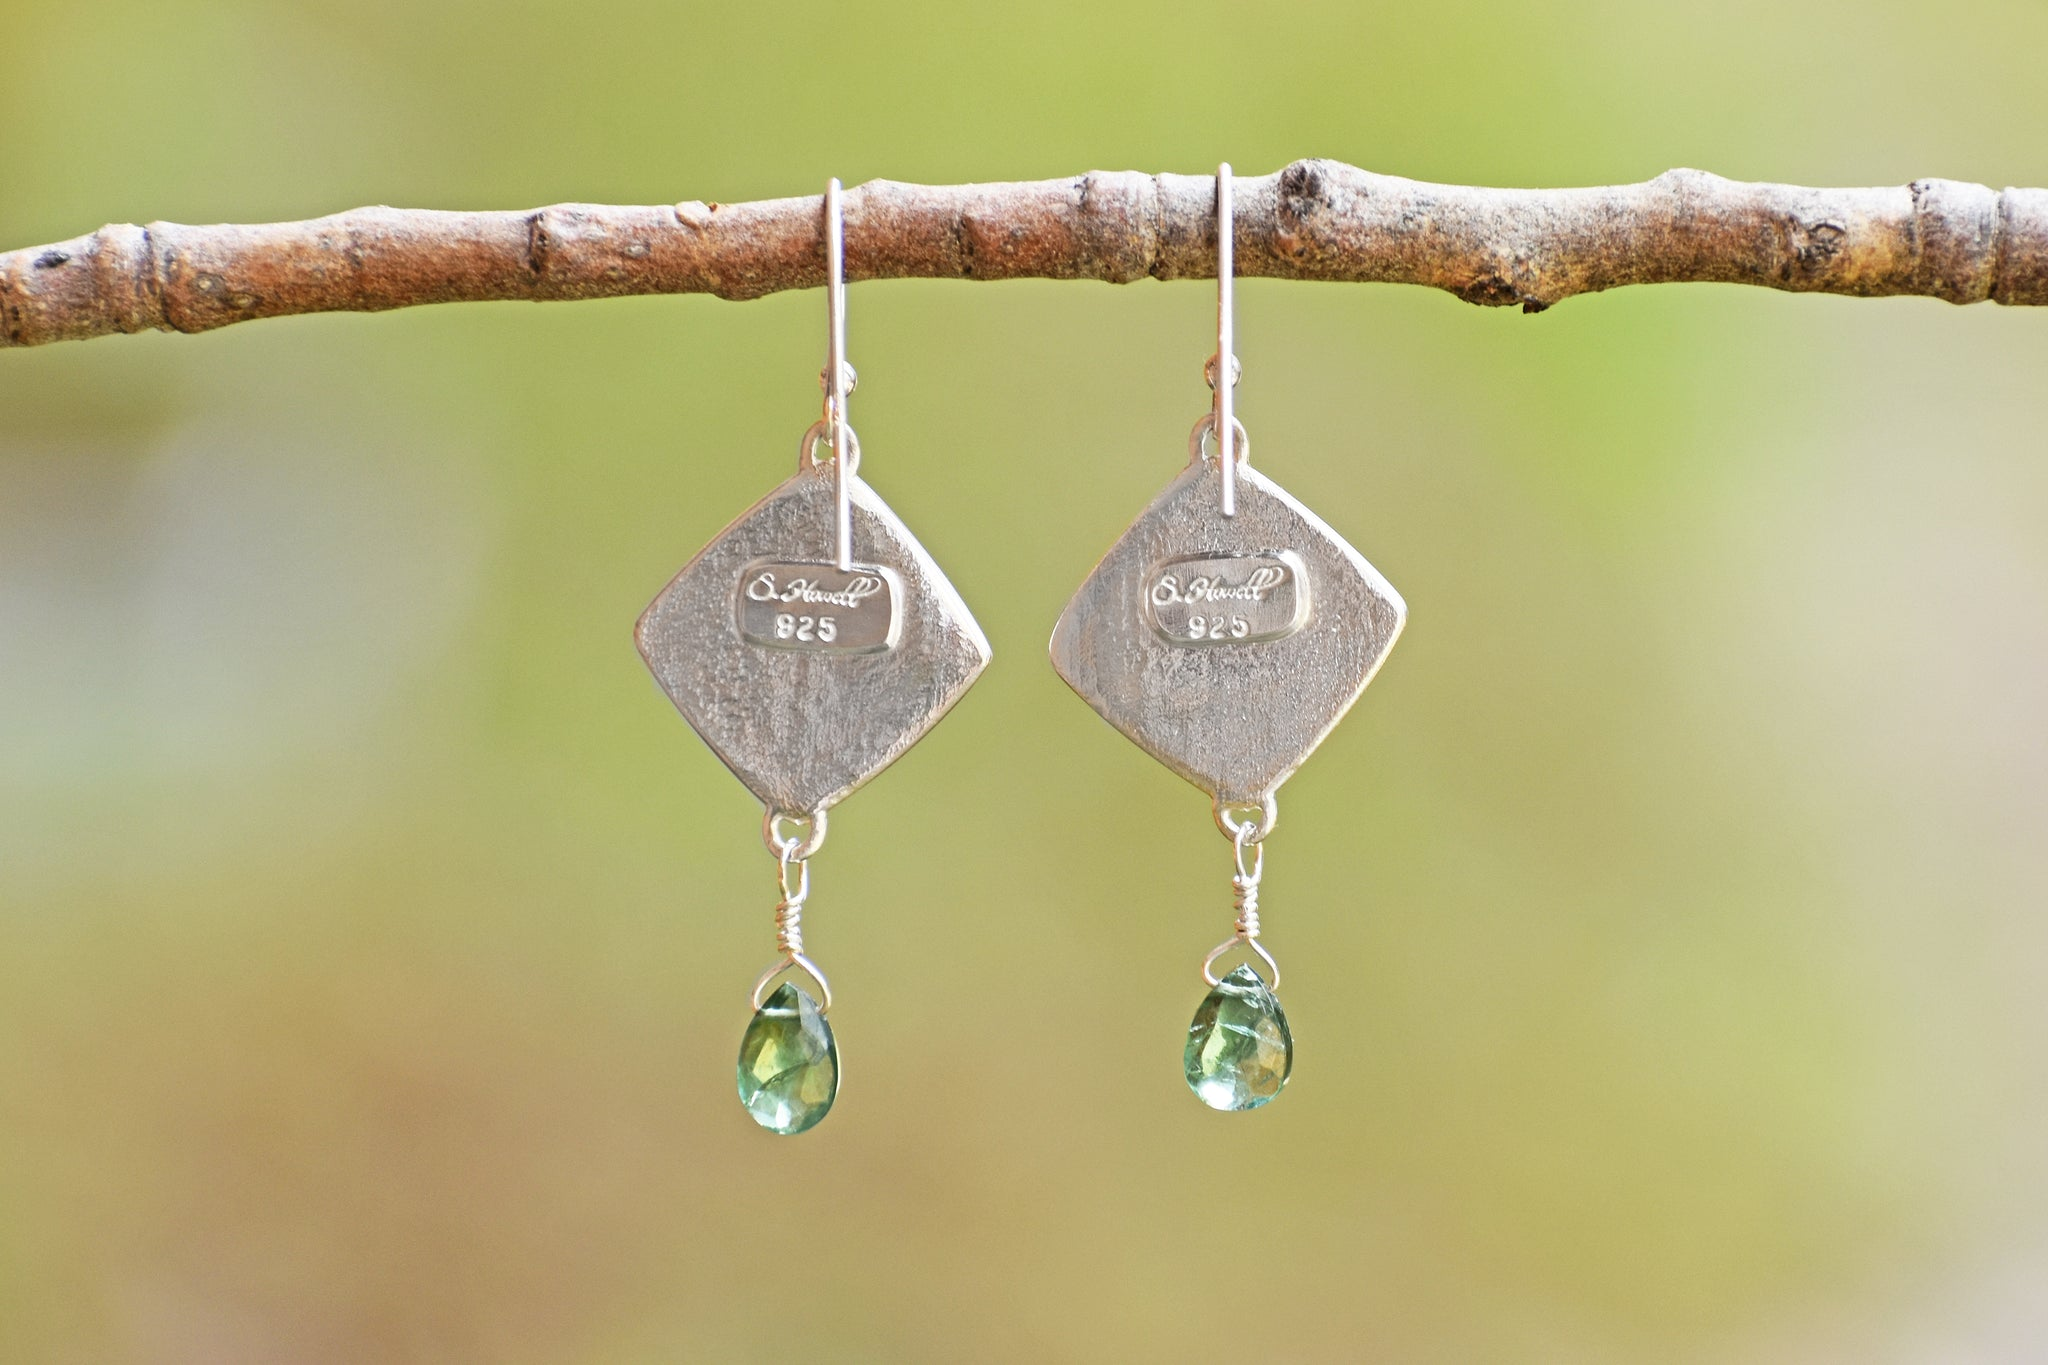 Square Leaf Earrings with Edging